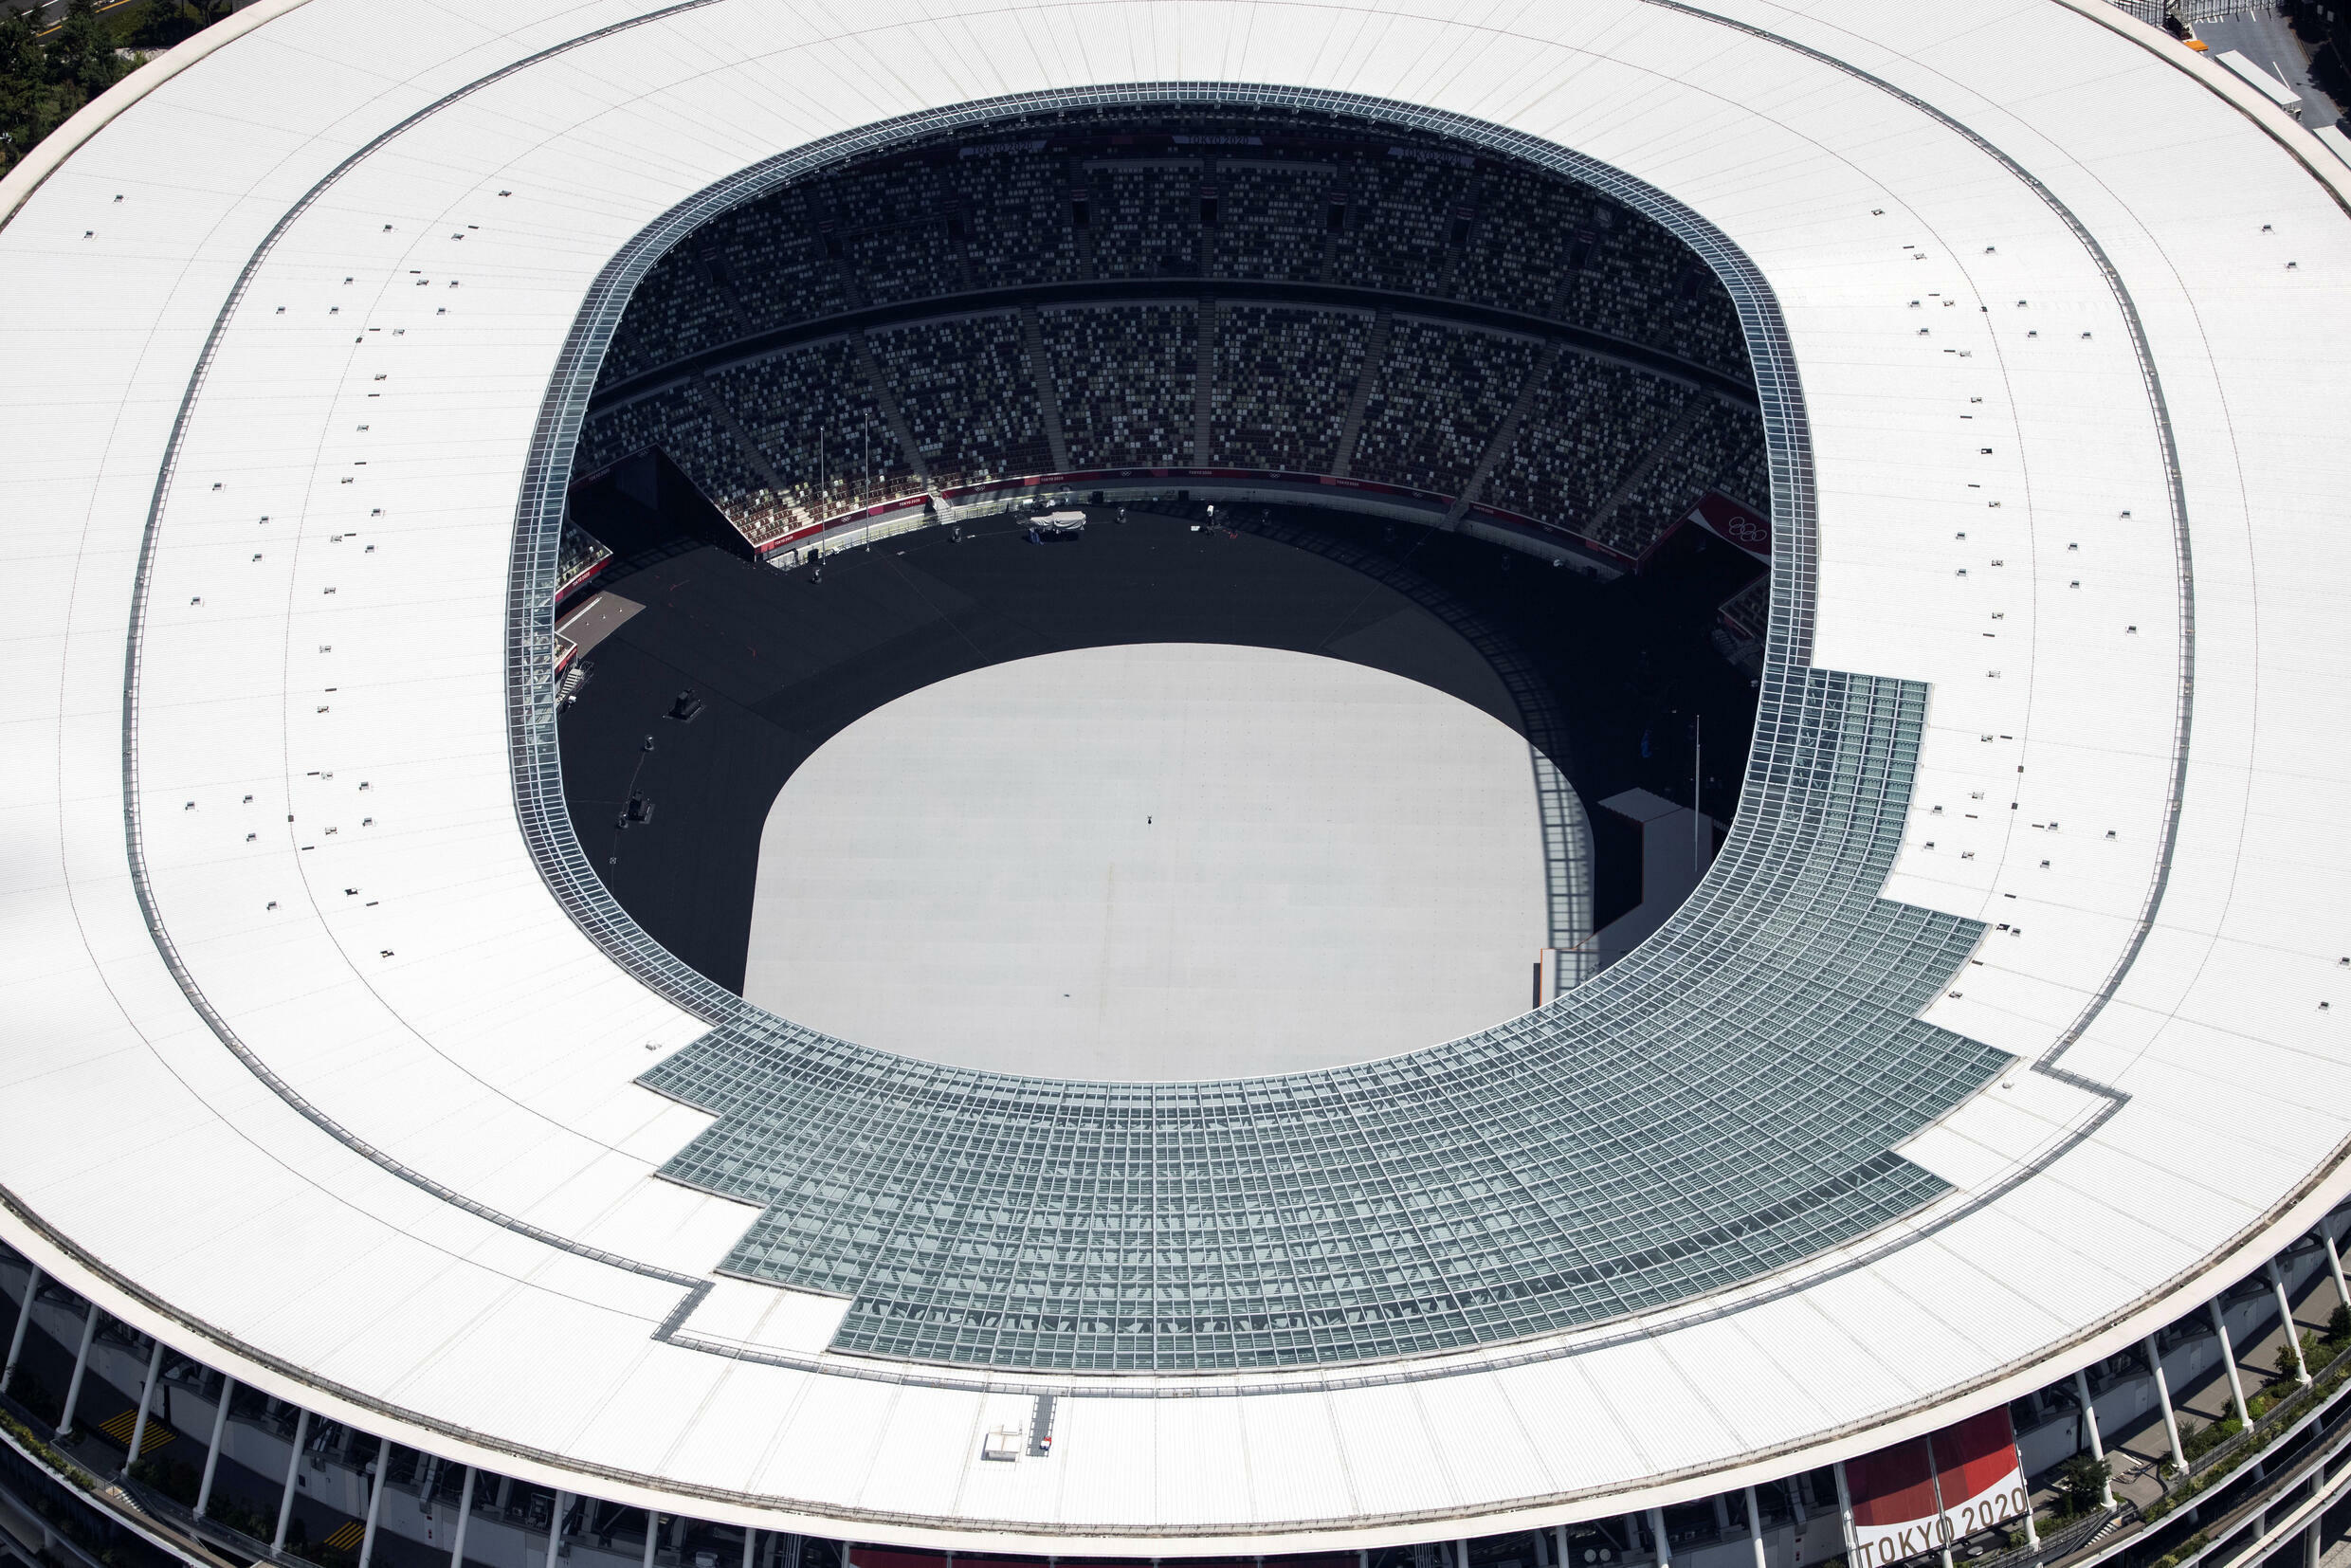 The Olympic Stadium will host the opening ceremony on Friday